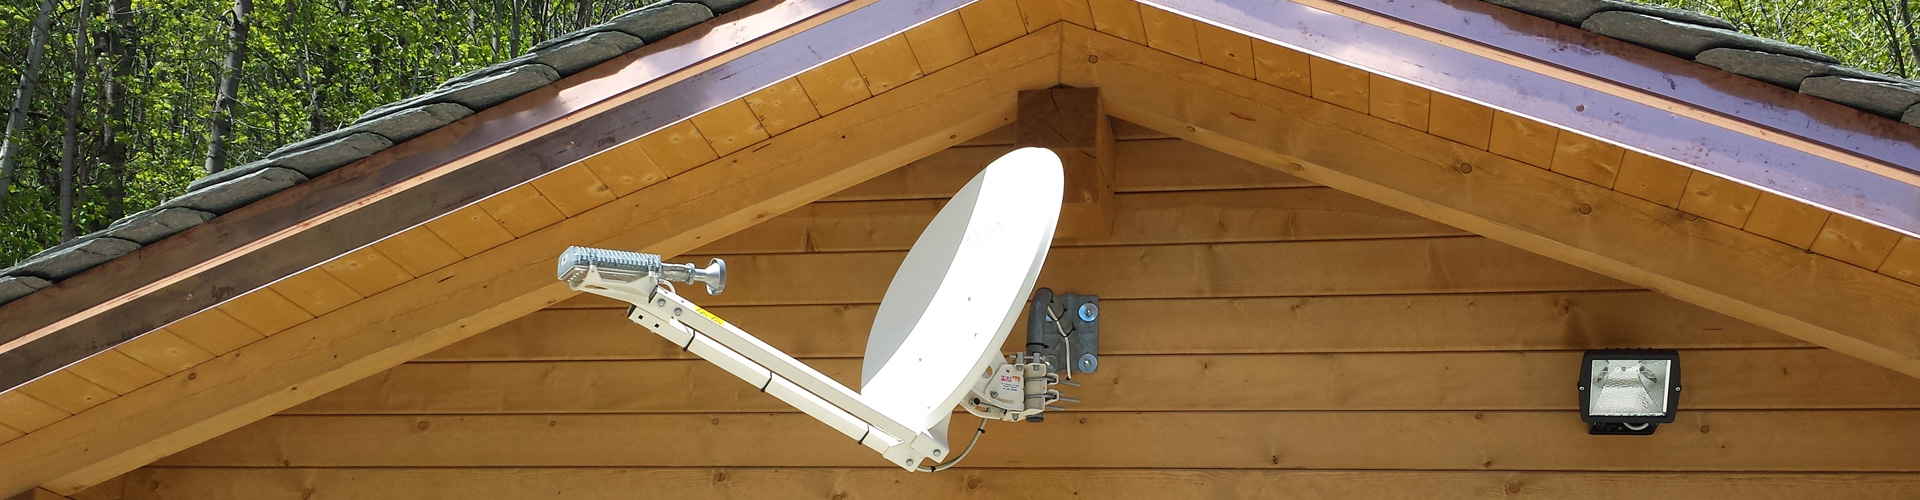 IMPIANTI TV E SATELLITARI